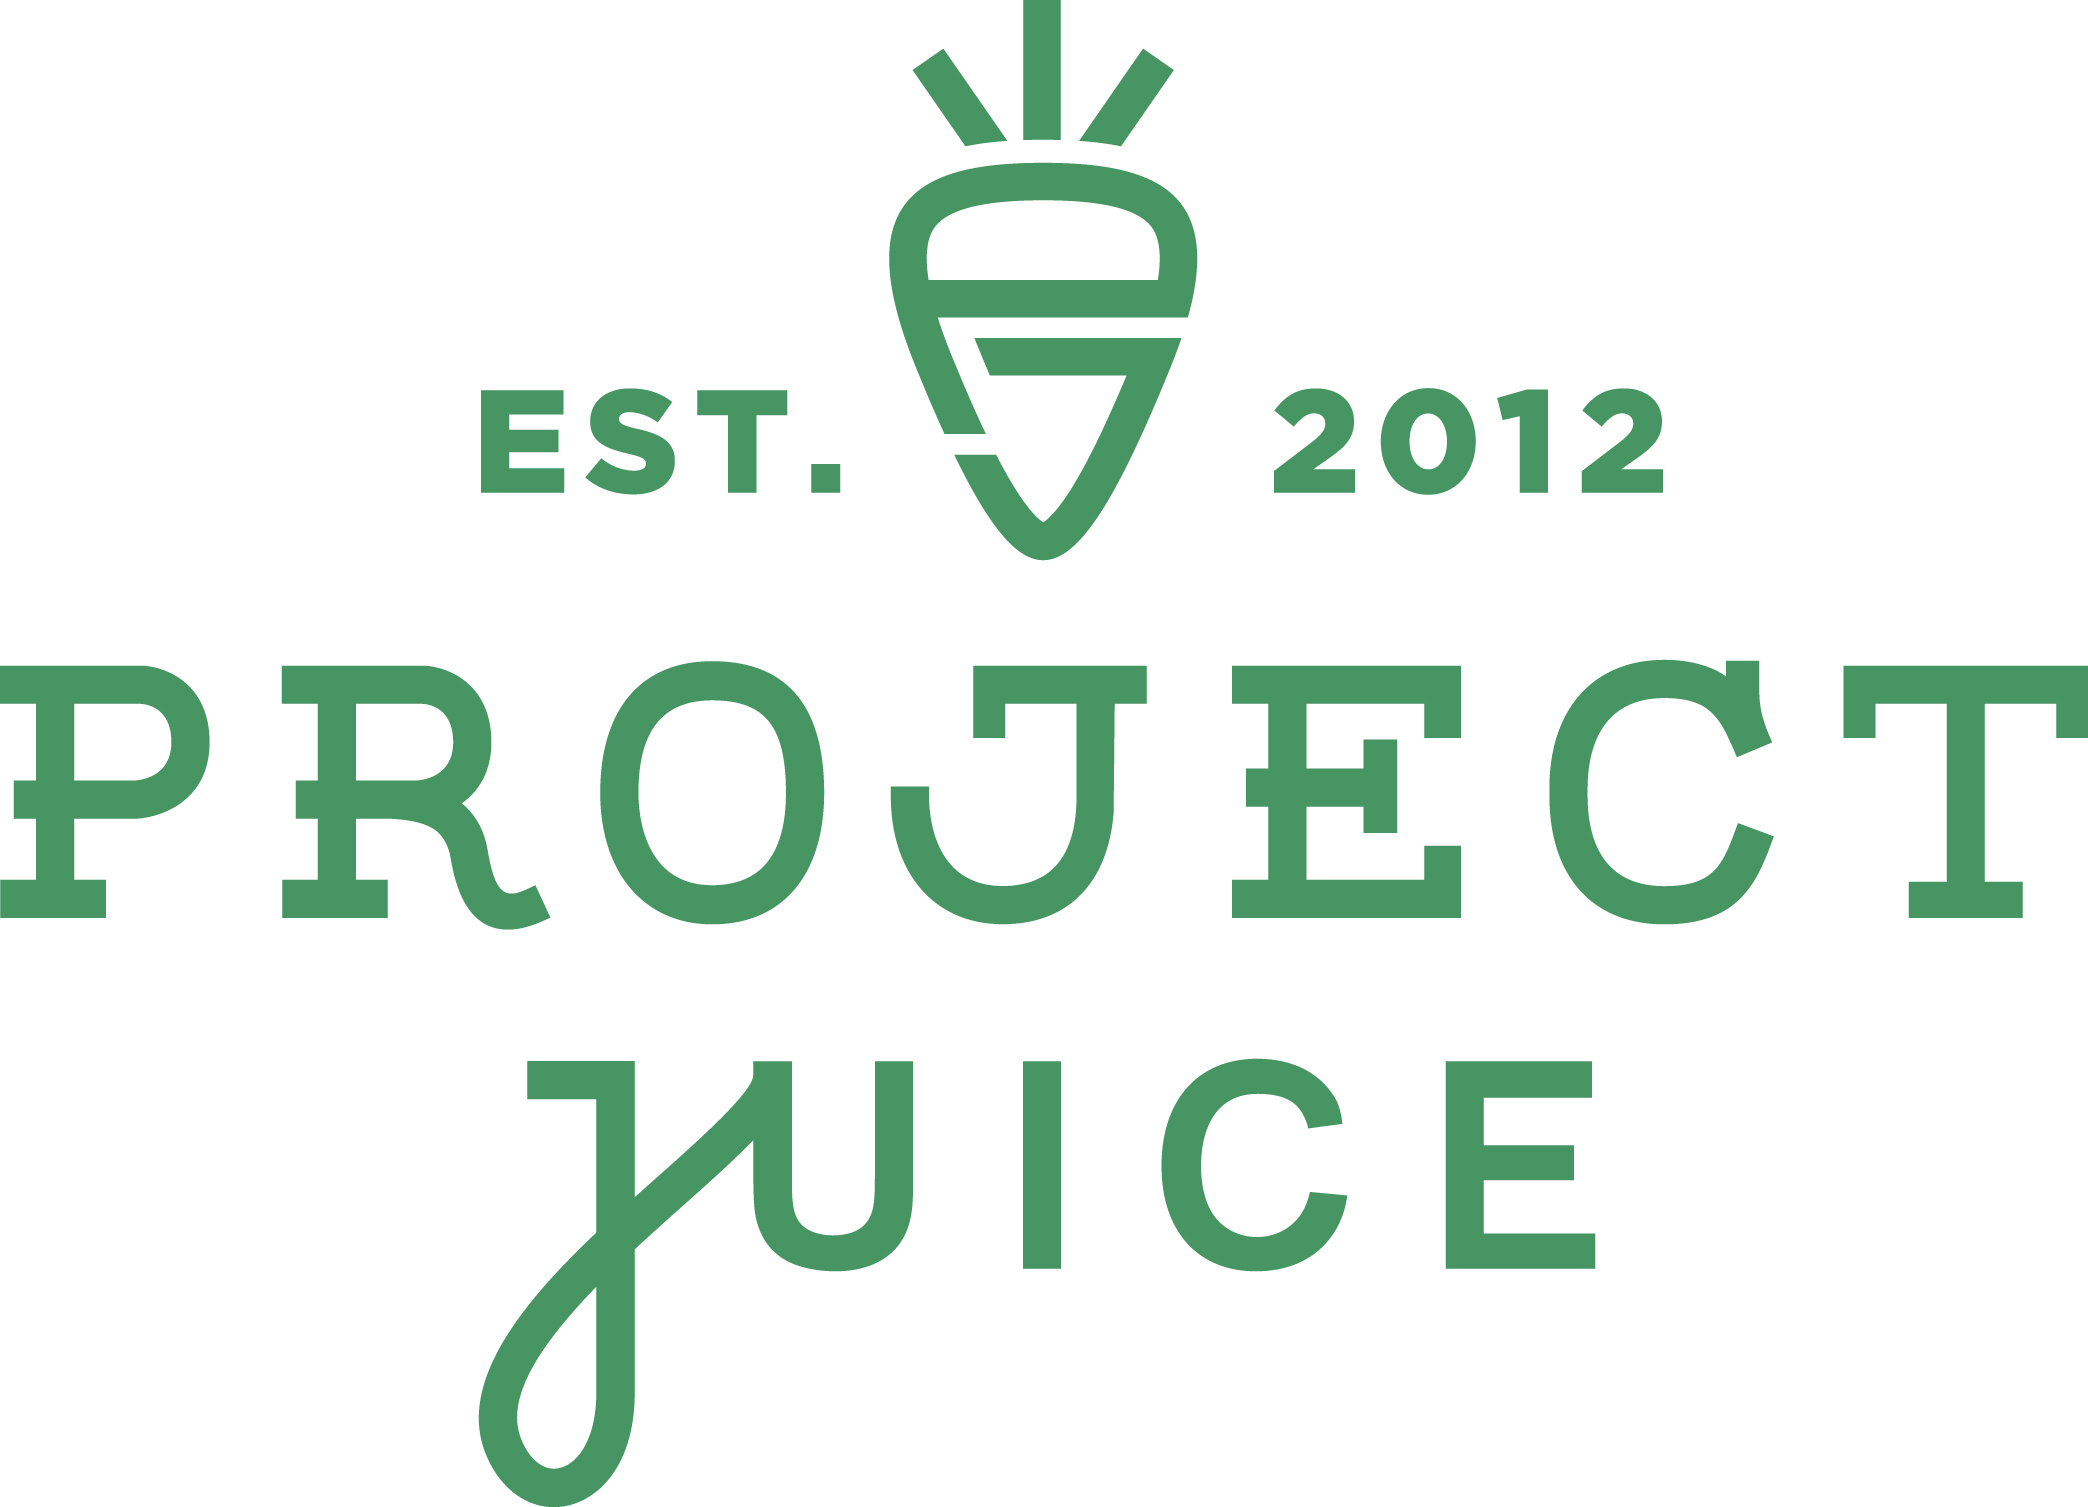 Meet marra st clair of project juice in hillcrest sdvoyager san getting in touch sdvoyager is built on recommendations from the community its how we uncover hidden gems so if you know someone who deserves recognition malvernweather Image collections